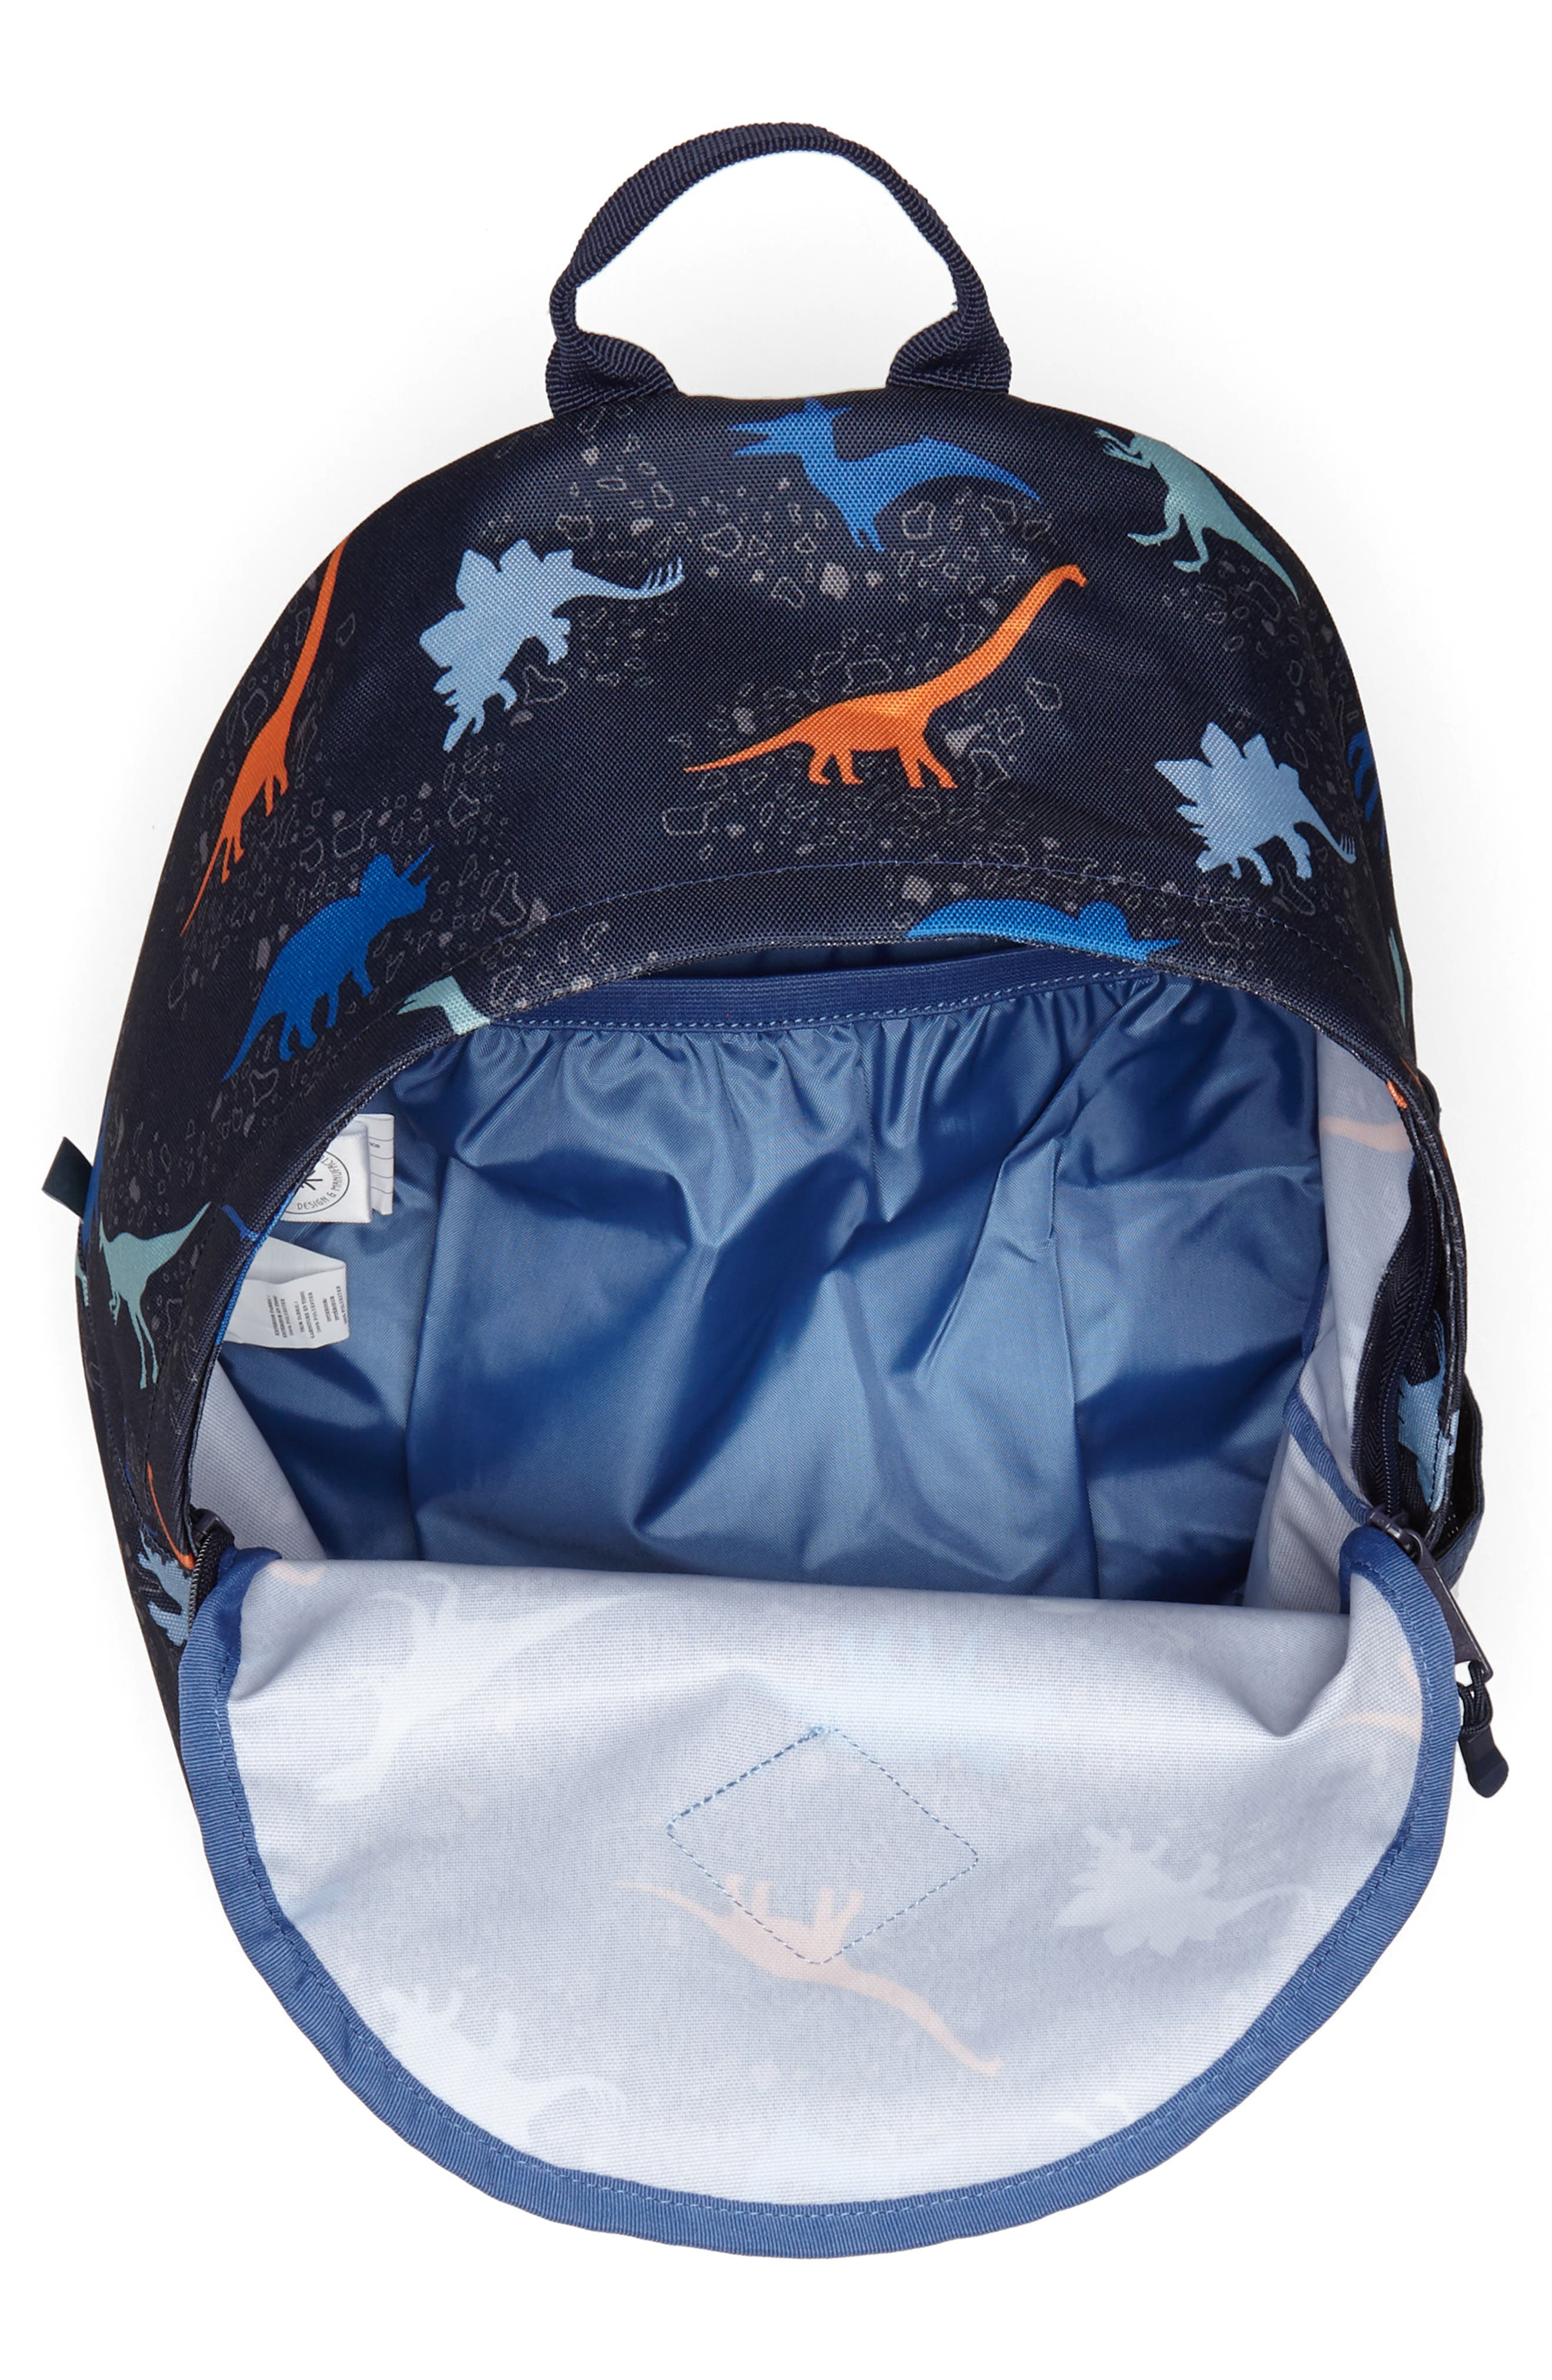 Bayside Print Backpack,                             Alternate thumbnail 3, color,                             200